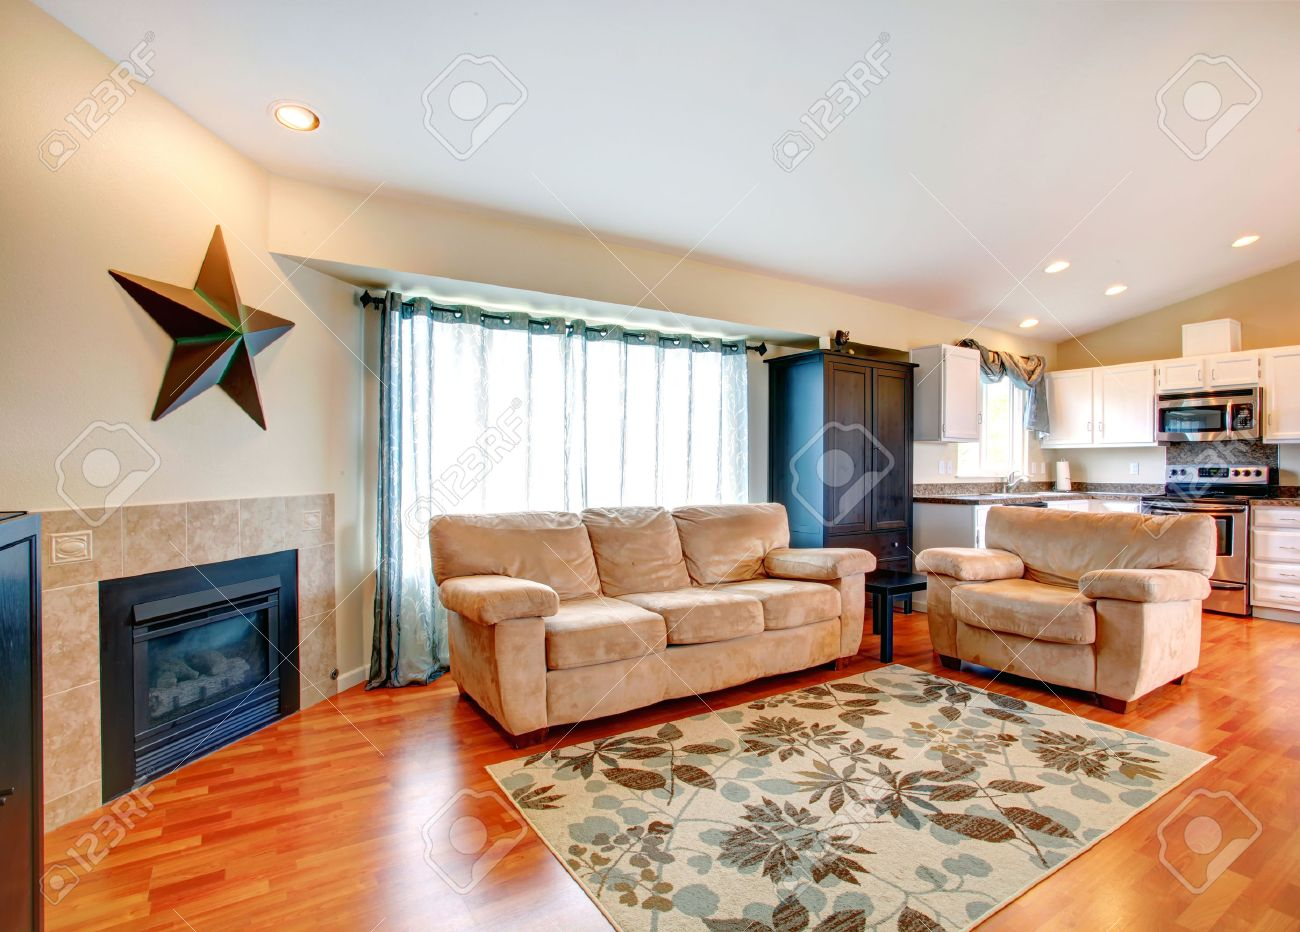 Furnished Living Room With Fireplace, Hardwood Floor And Rug Furnished With  Couch And Love Seat